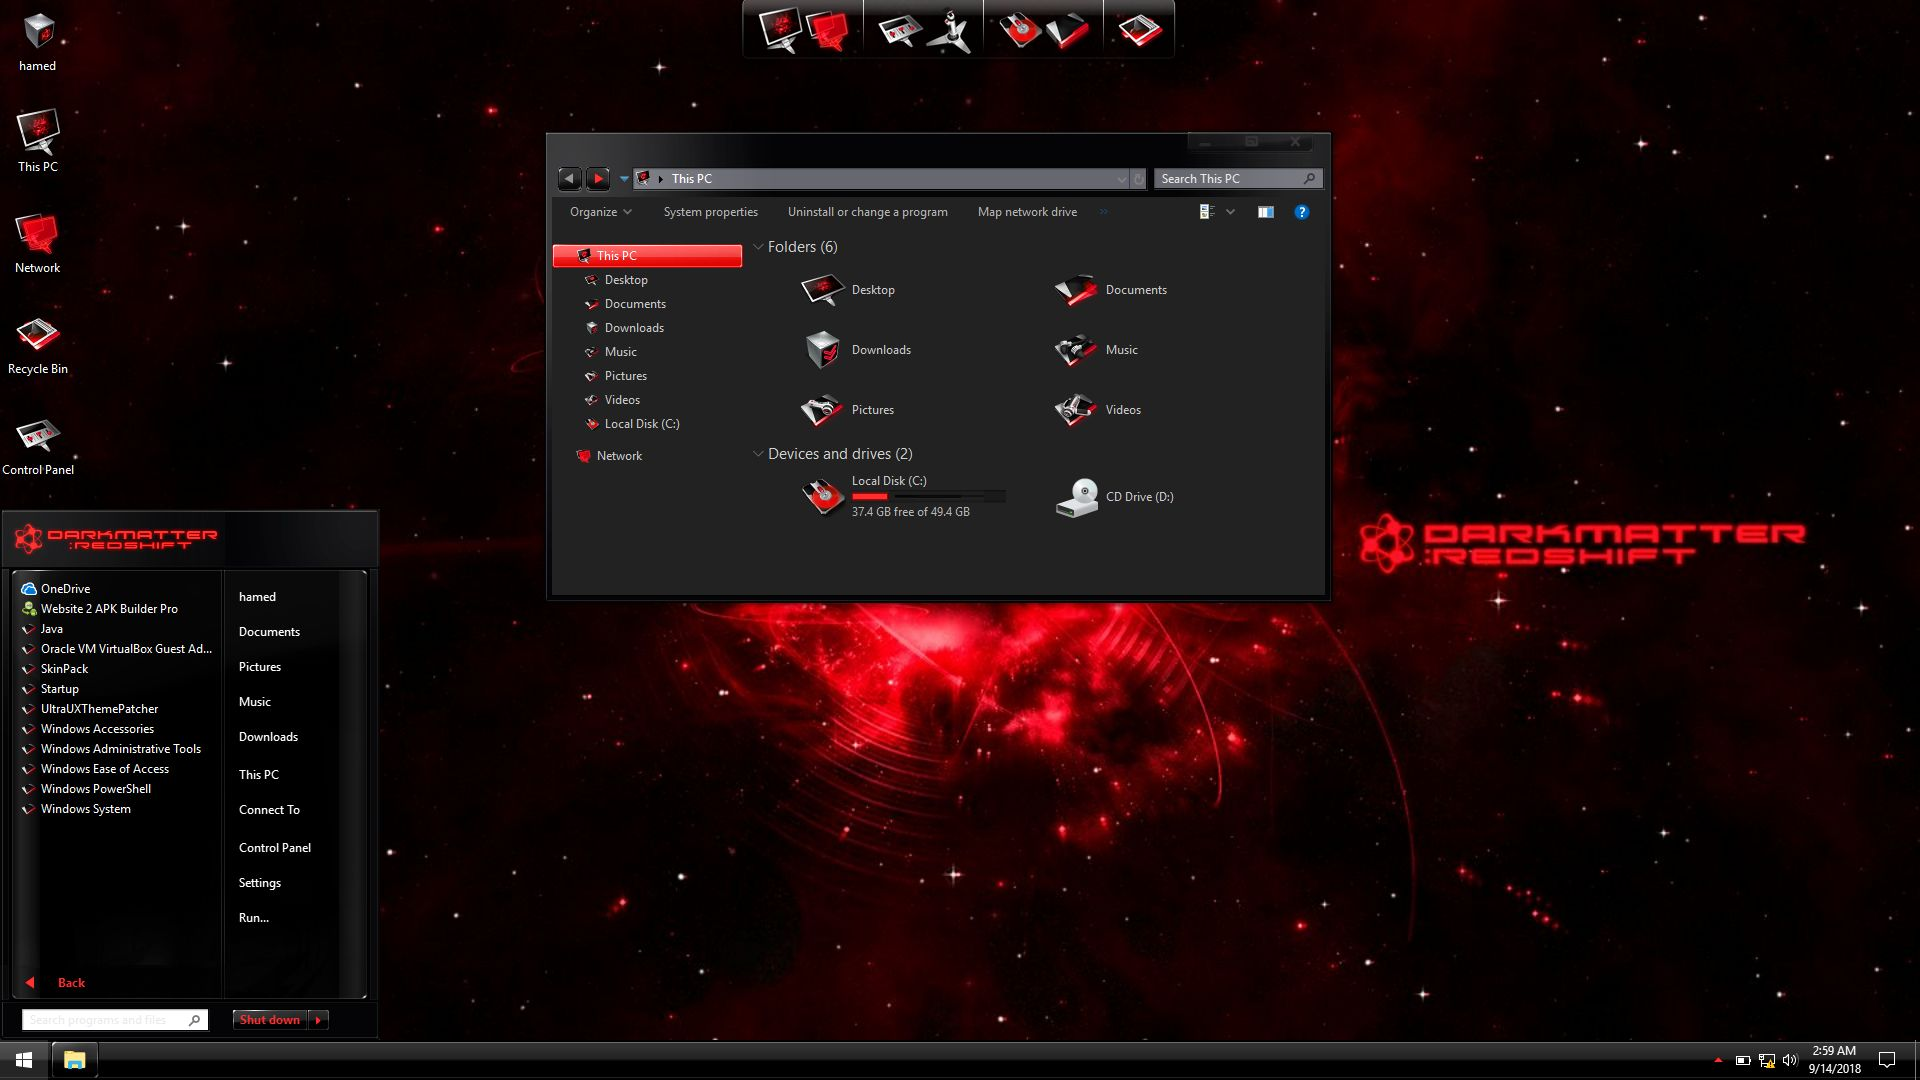 BlackMatter Red SkinPack for Windows 7\10